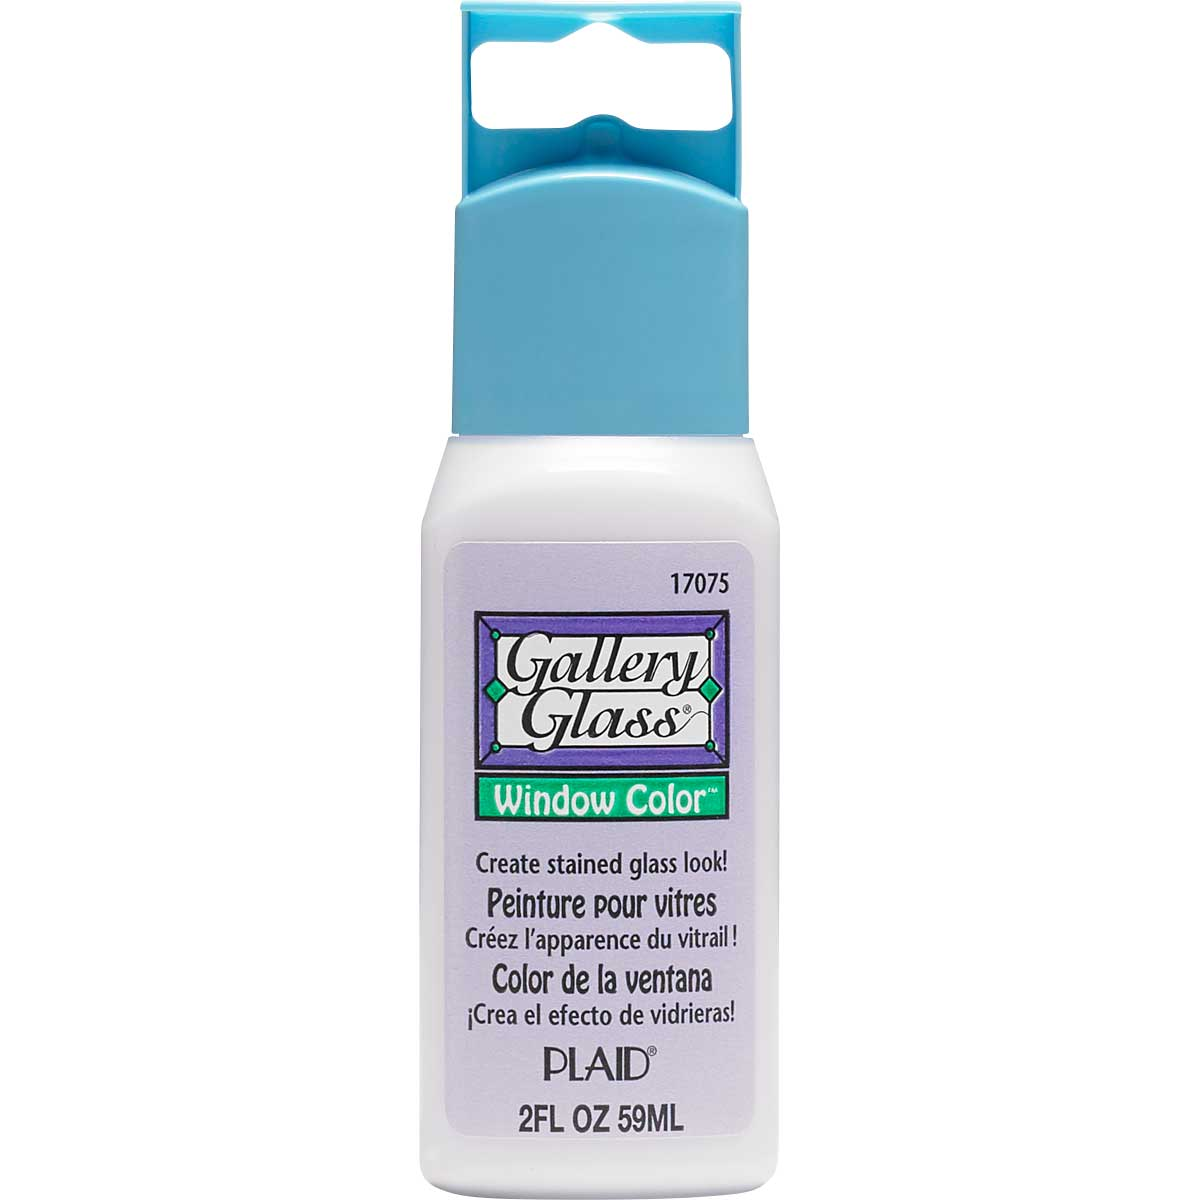 Gallery Glass ® Window Color™ - Lilac, 2 oz. - 17075